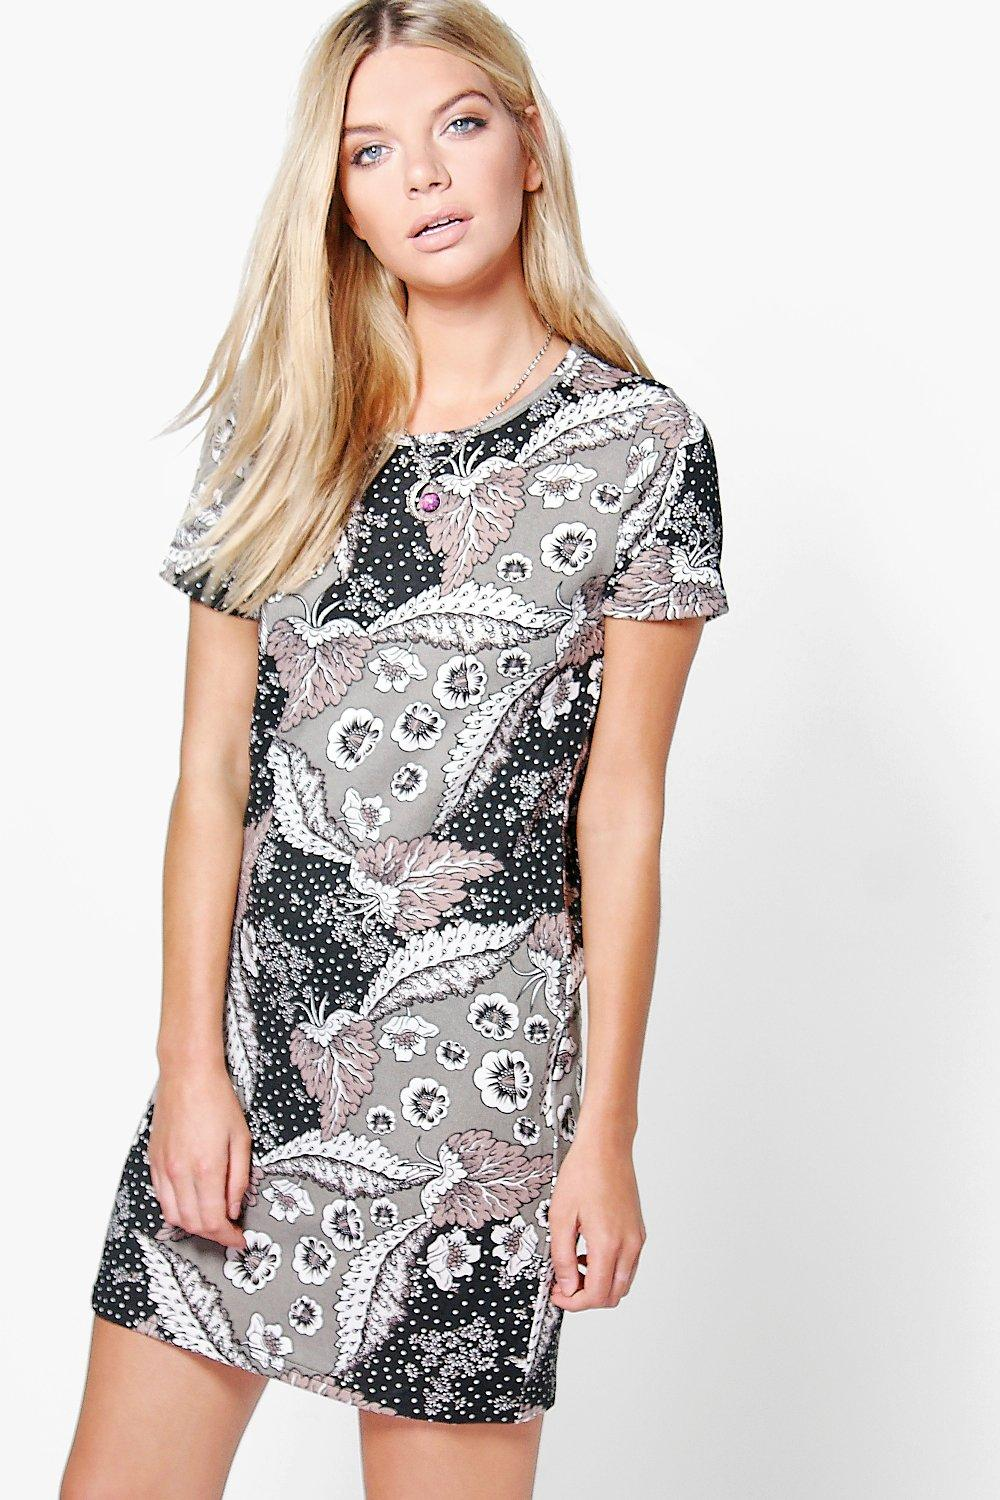 Lanie Floral Brushed Knit Shift Dress